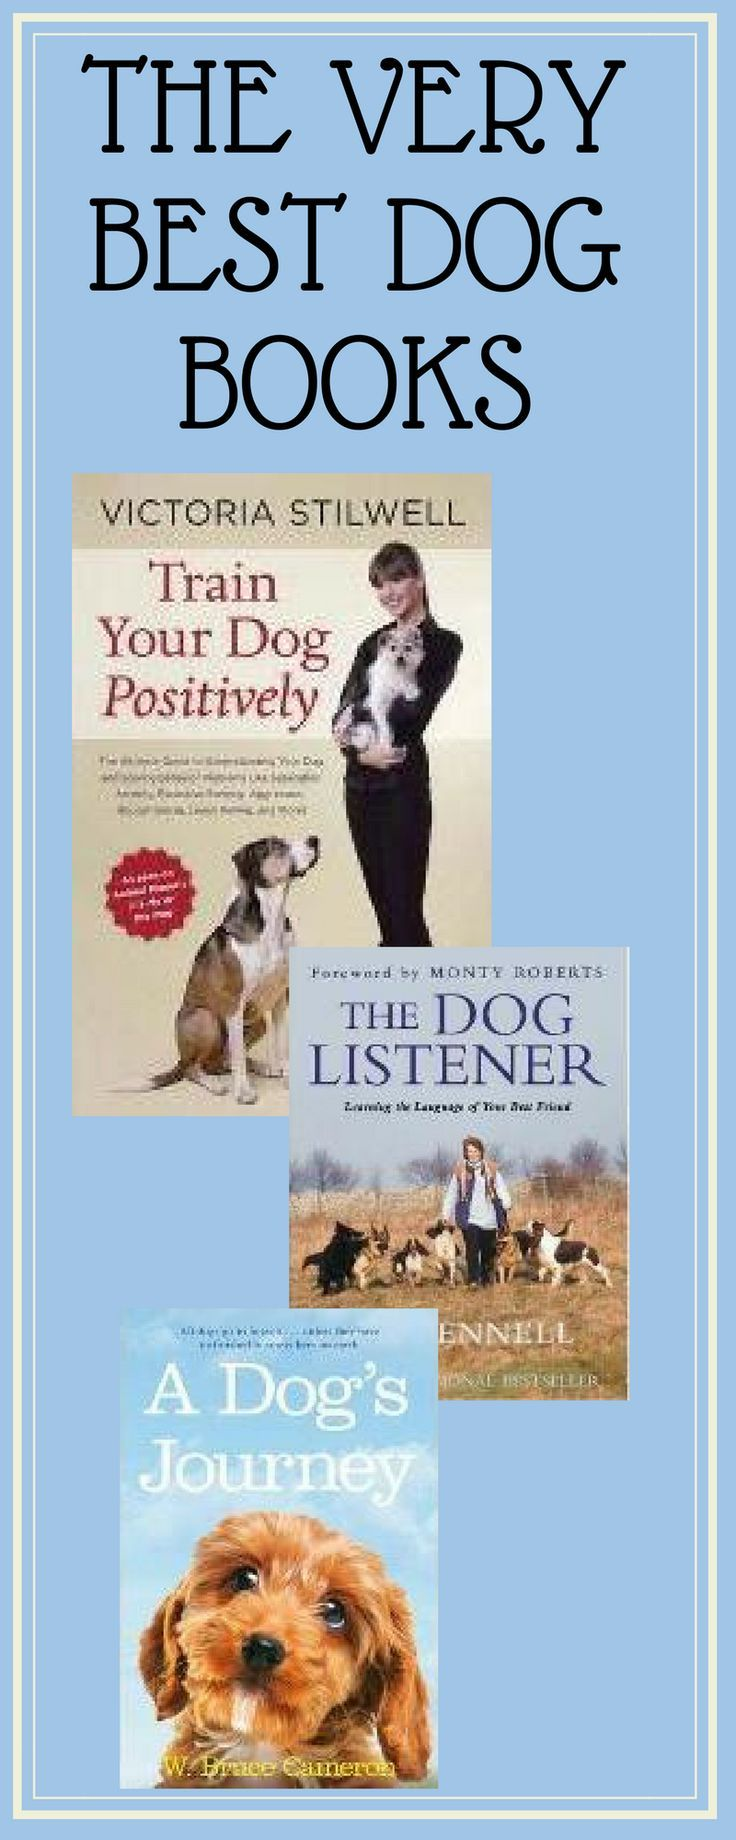 Find The Very Best Dog Books At Unbeatable Prices Book Depository Doghealthbook Dogbehaviourbook Dogownershipbook With Images Dog Books Animal Books Best Dogs